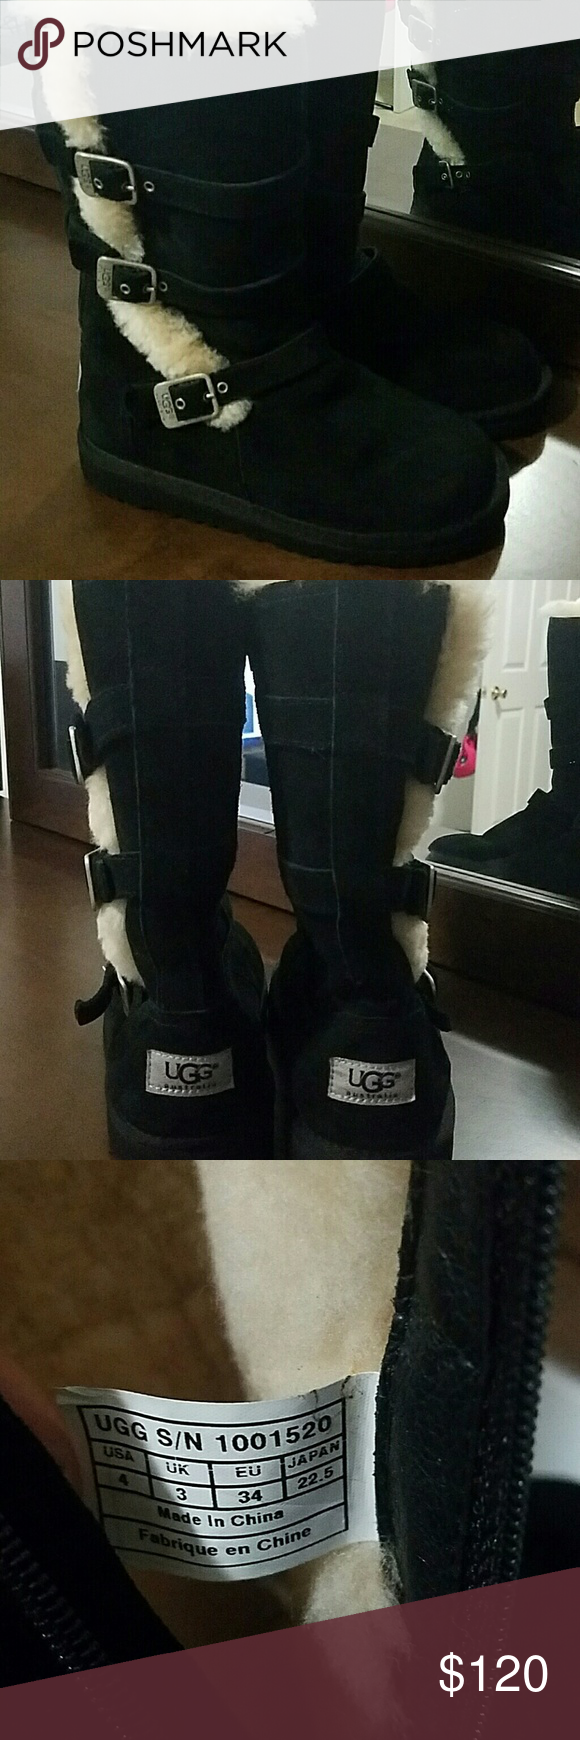 Girl UGG boots Never worn Black UGG boots... my daughter begged me for these boots and I got them but she never wore them so I'm selling them.. UGG Shoes Winter & Rain Boots #uggbootsoutfitblackgirl Girl UGG boots Never worn Black UGG boots... my daughter begged me for these boots and I got them but she never wore them so I'm selling them.. UGG Shoes Winter & Rain Boots #uggbootsoutfitblackgirl